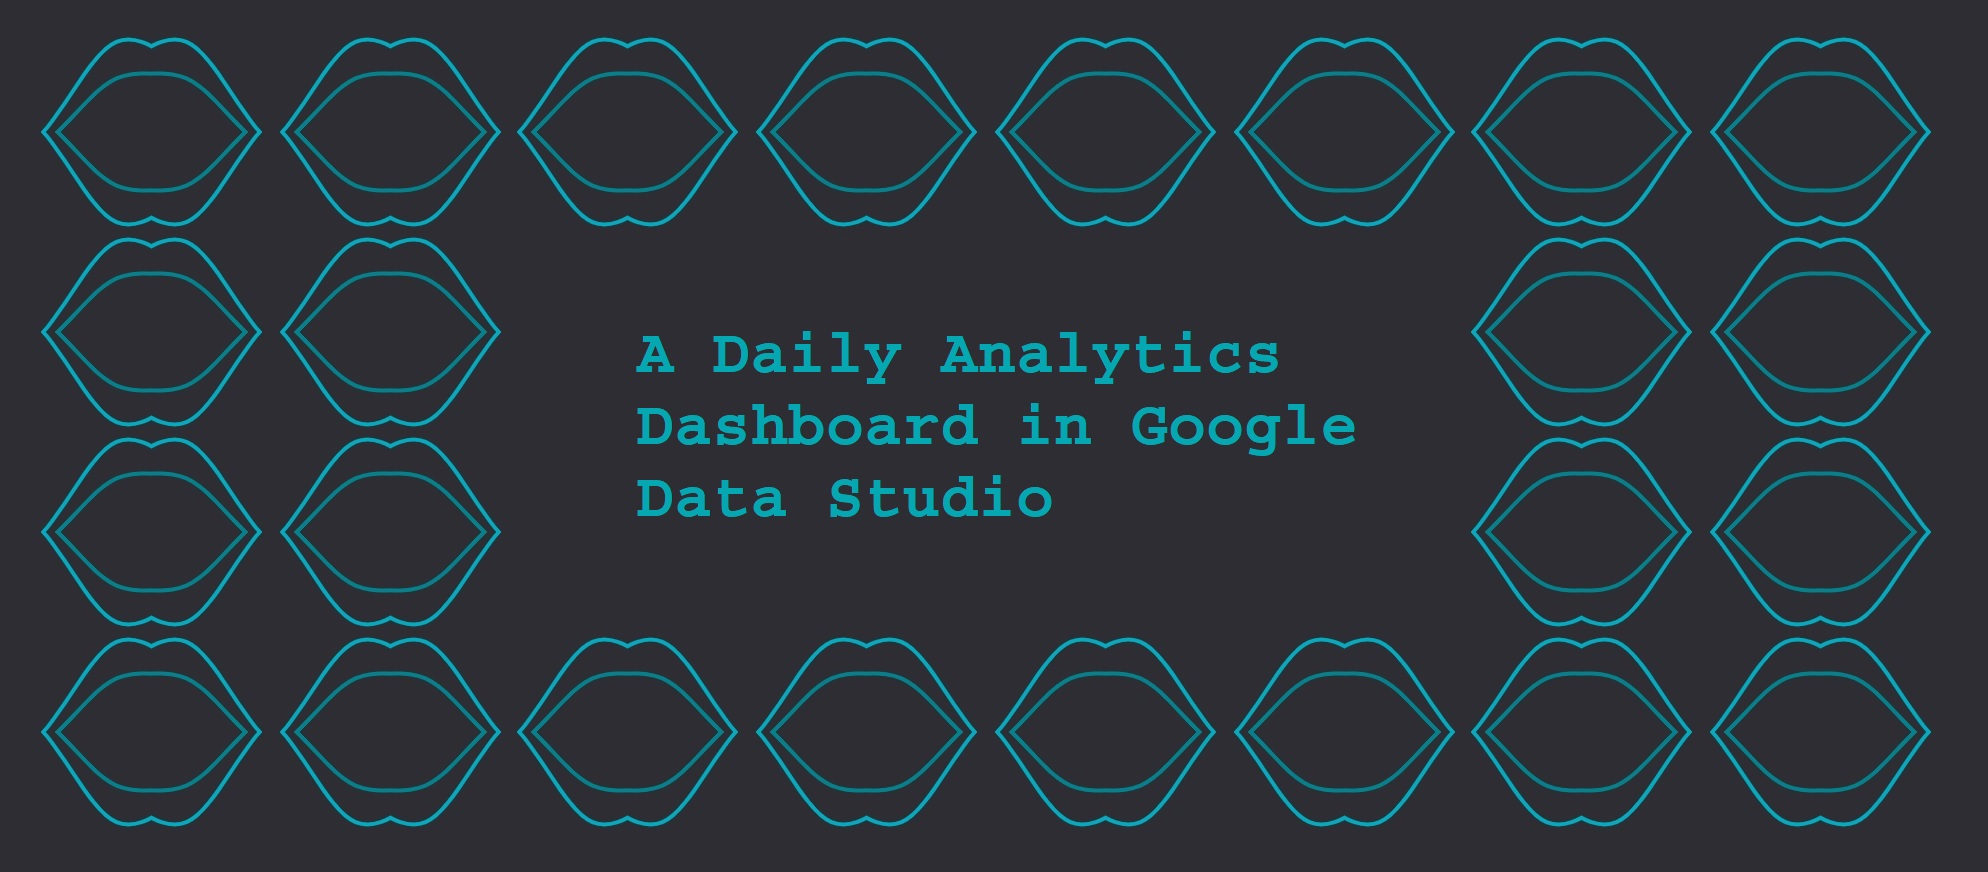 A Daily Analytics dashboard in Google Data Studio